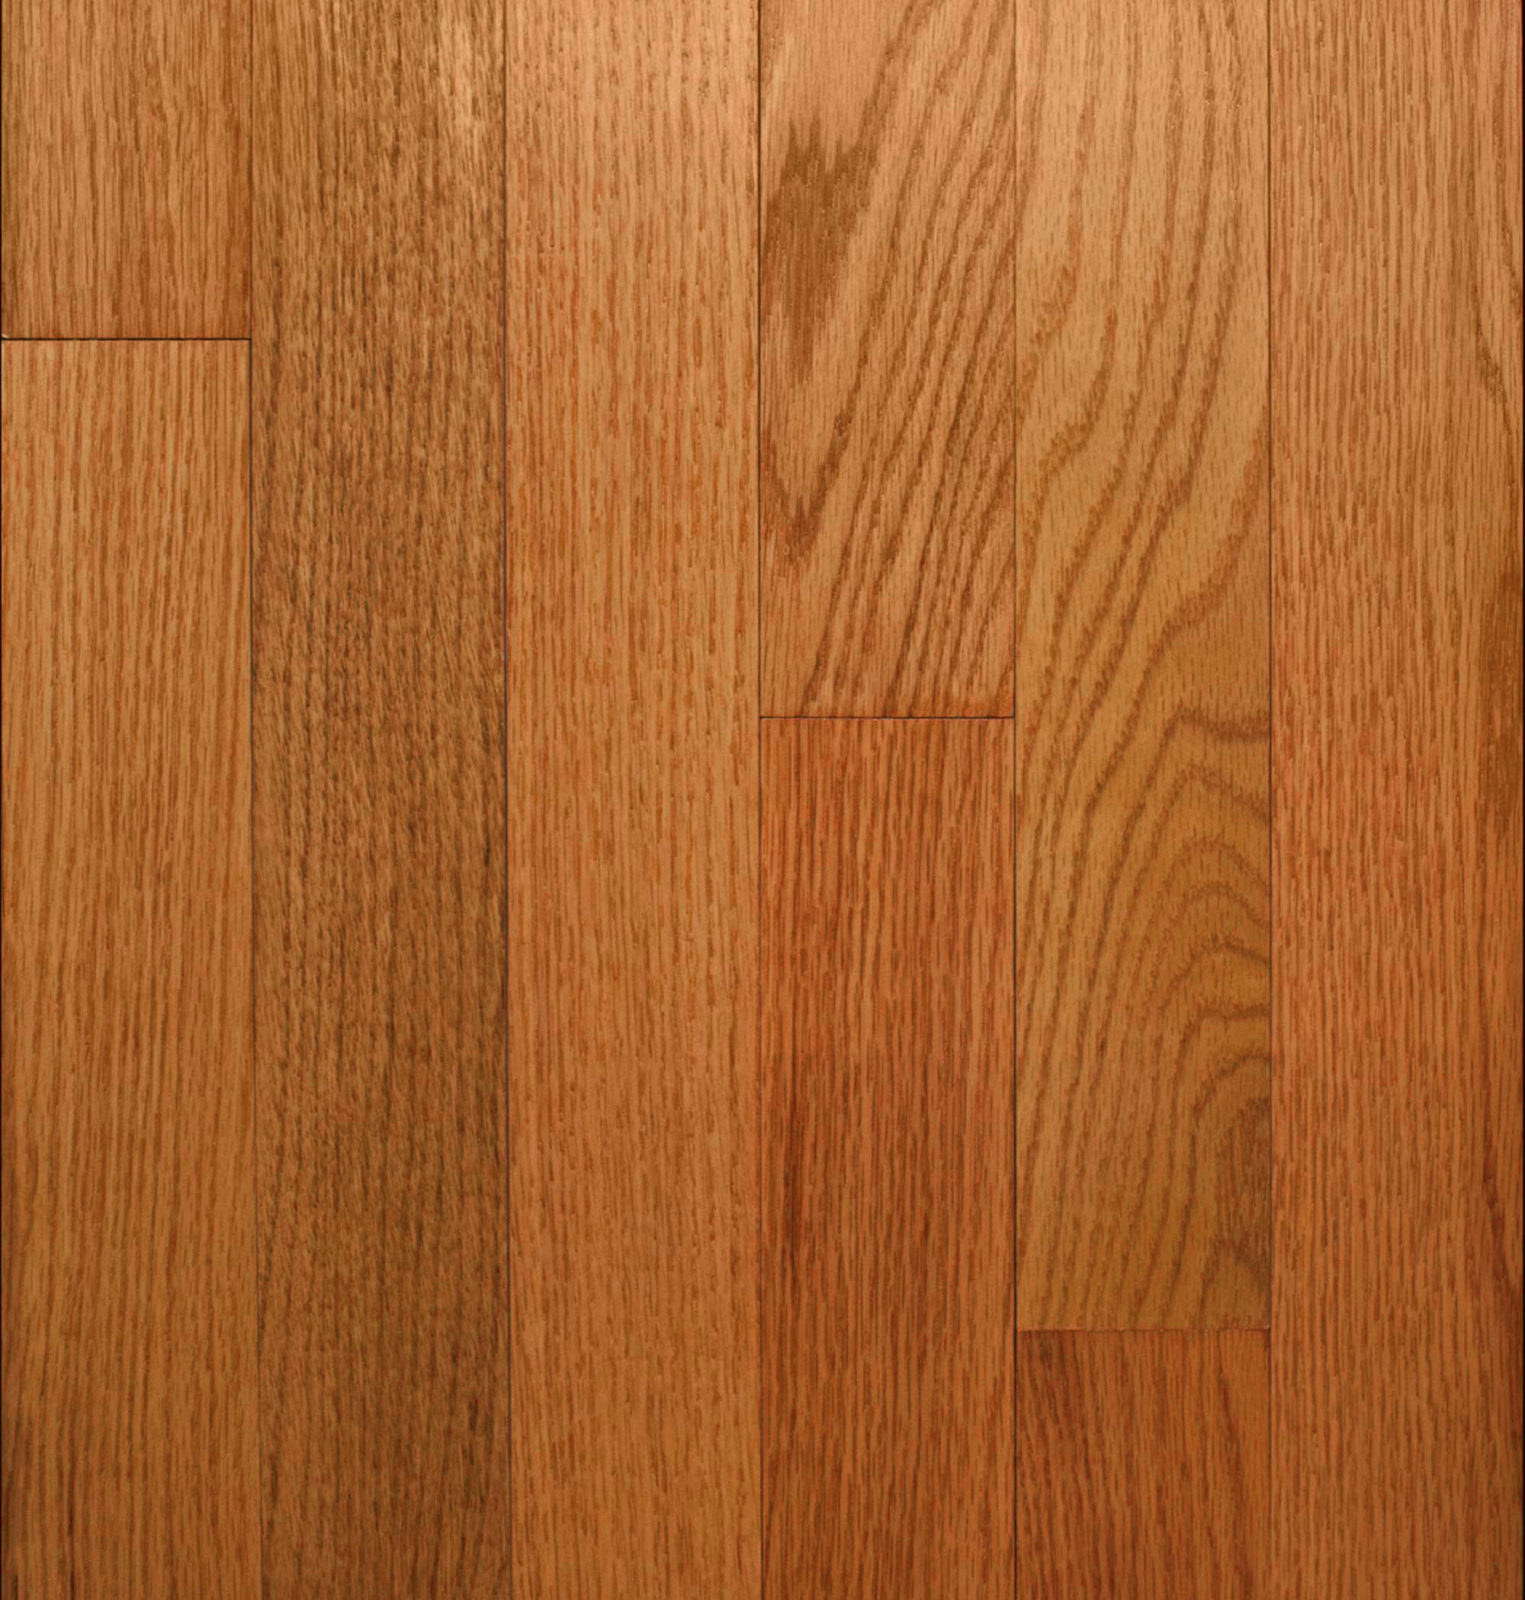 2 1 4 x 3 4 mohawk red oak butterscotch schillings for Mohawk hardwood flooring